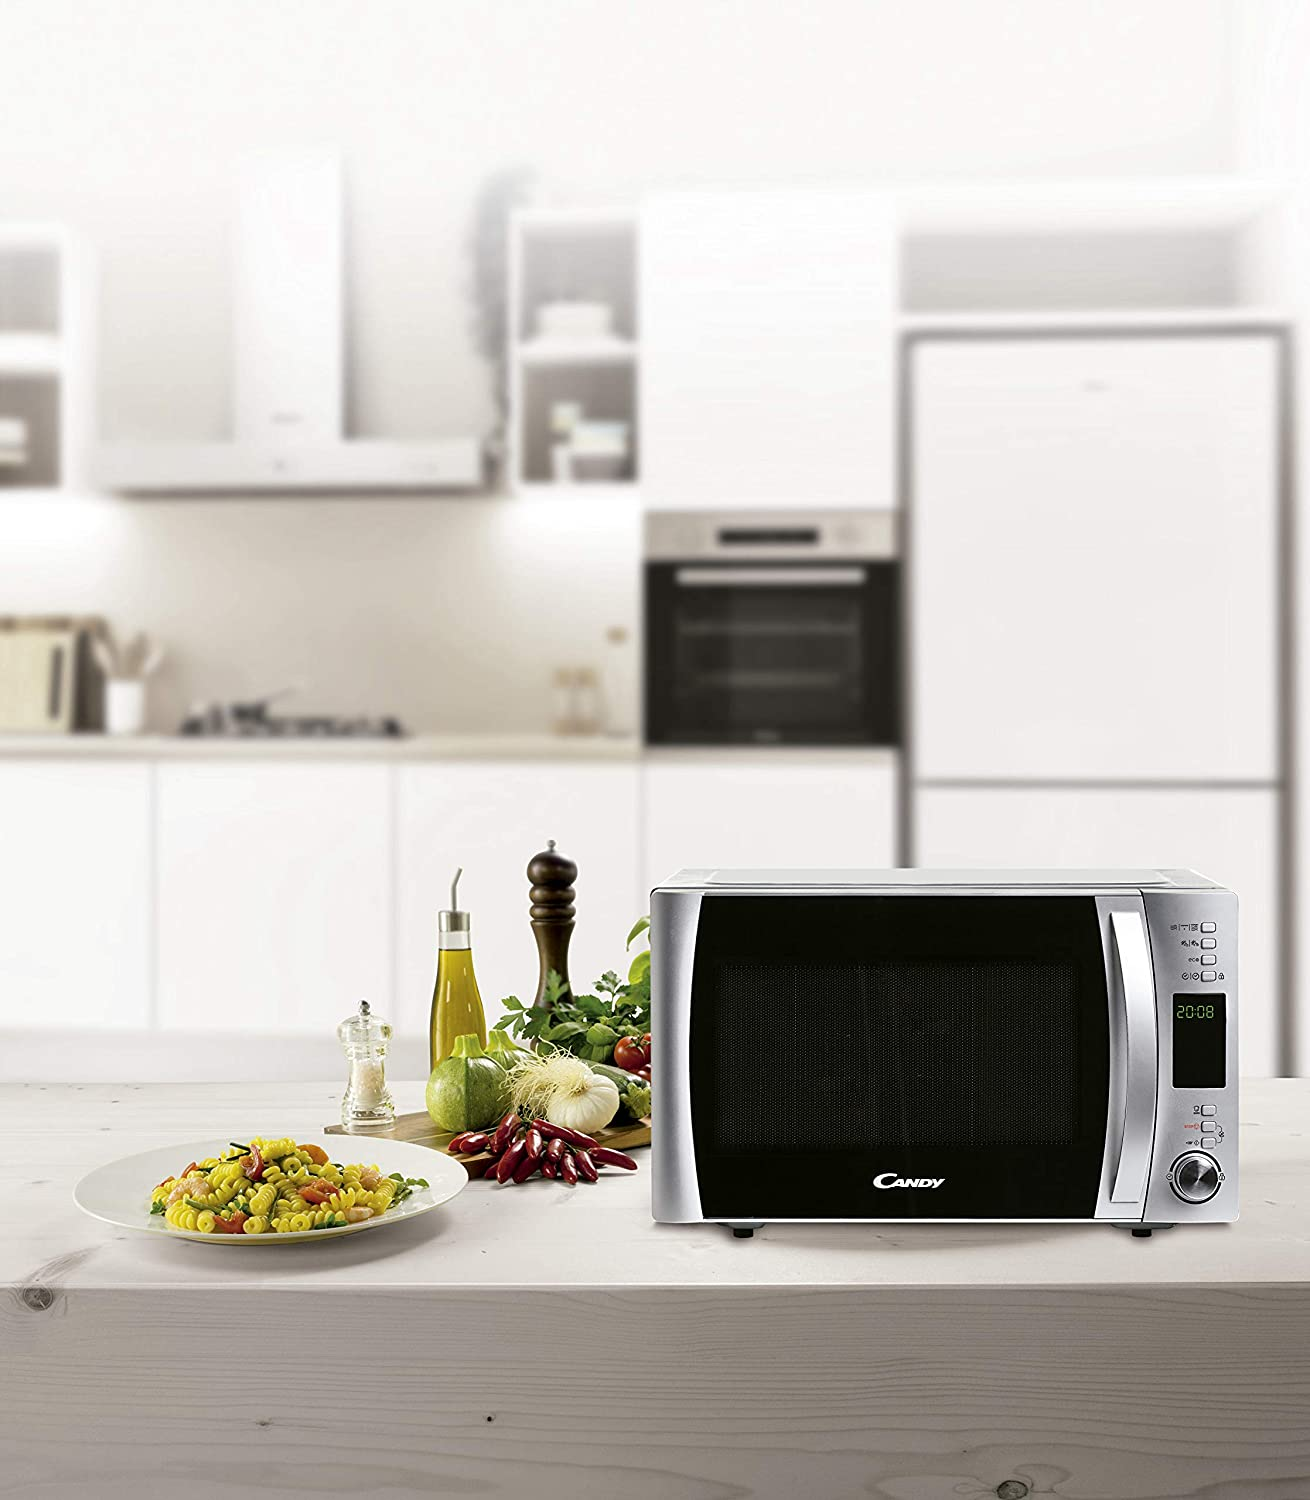 Candy CMXG22DS - Microondas con grill y cook in app, 22 L ...